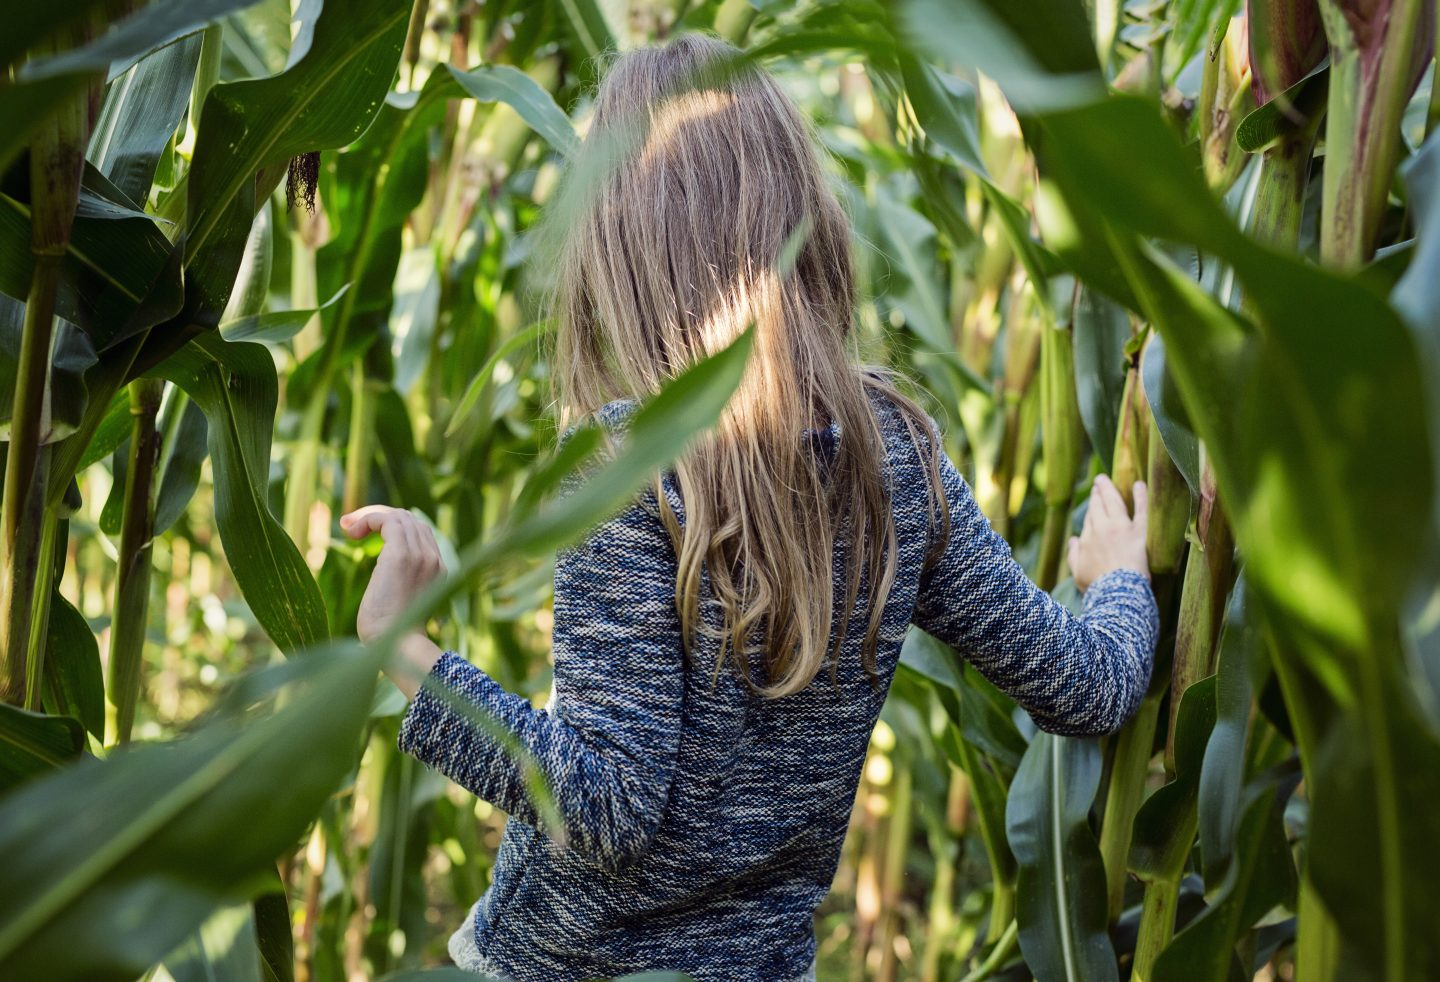 A young girl is going through a corn field. sustainability, employees, career advice, purpose, GamePlan A